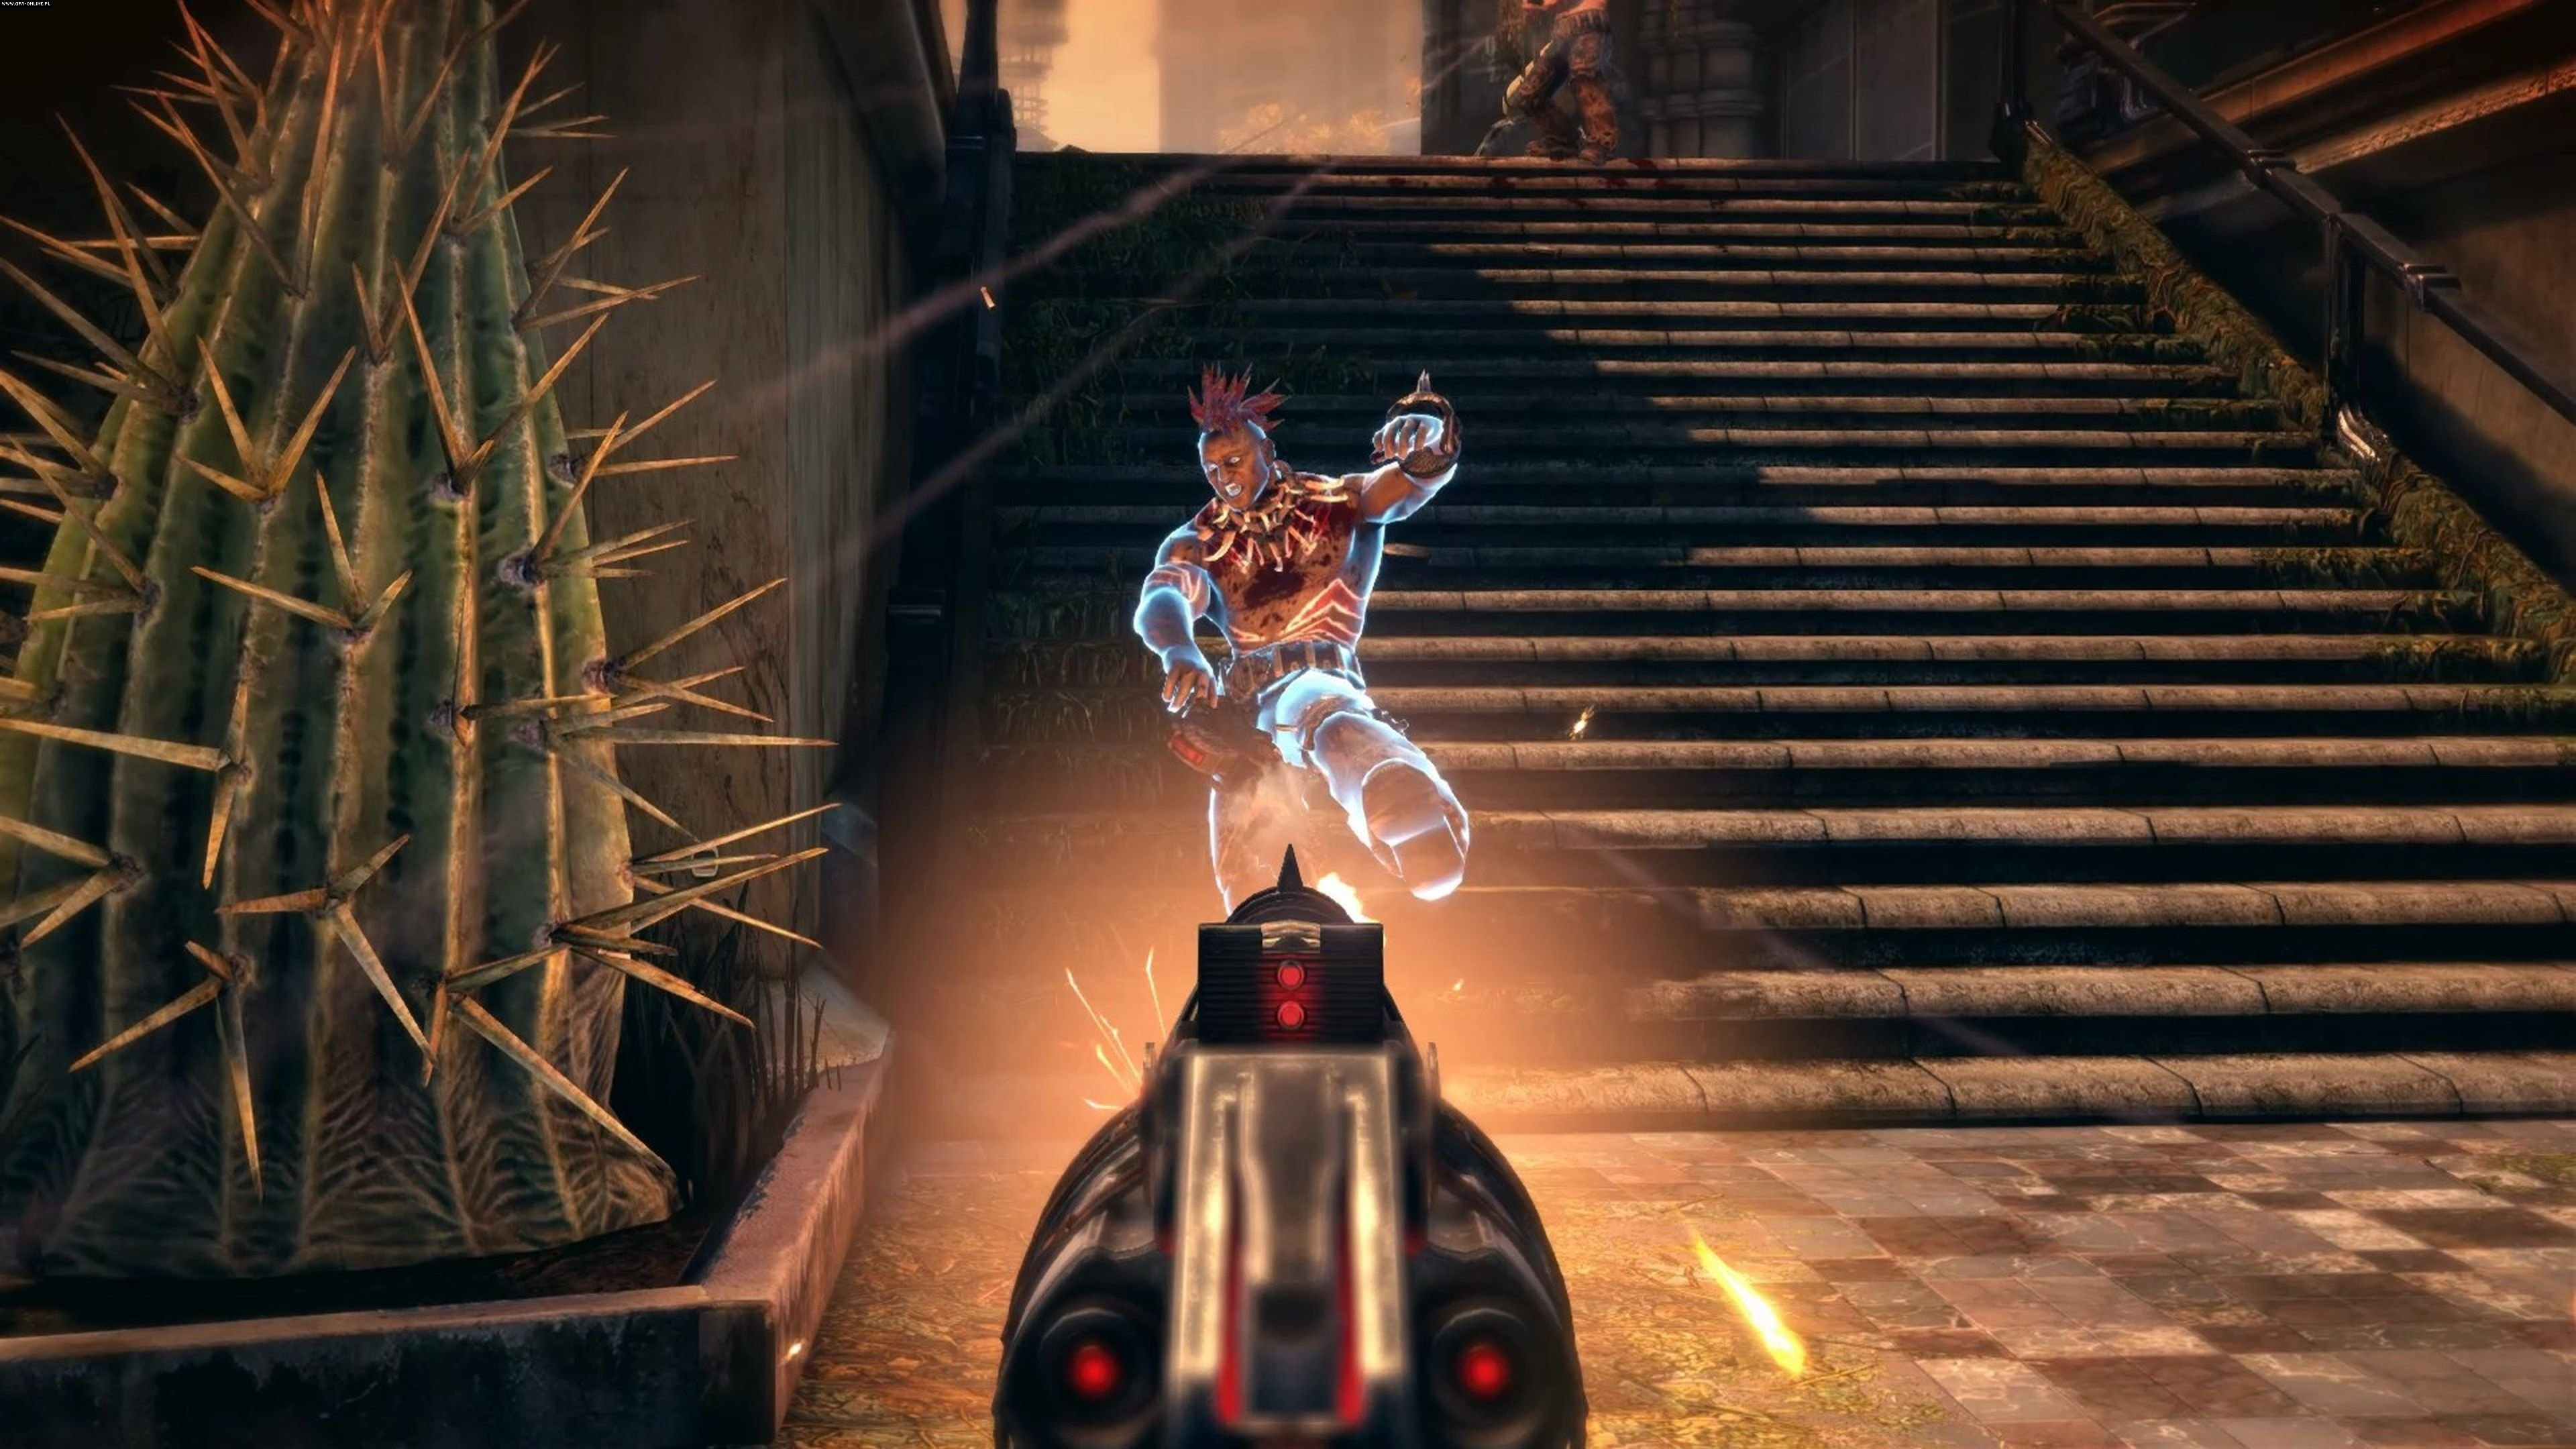 Bulletstorm: Full Clip Edition PC, PS4 Games Image 4/27, People Can Fly, Gearbox Publishing